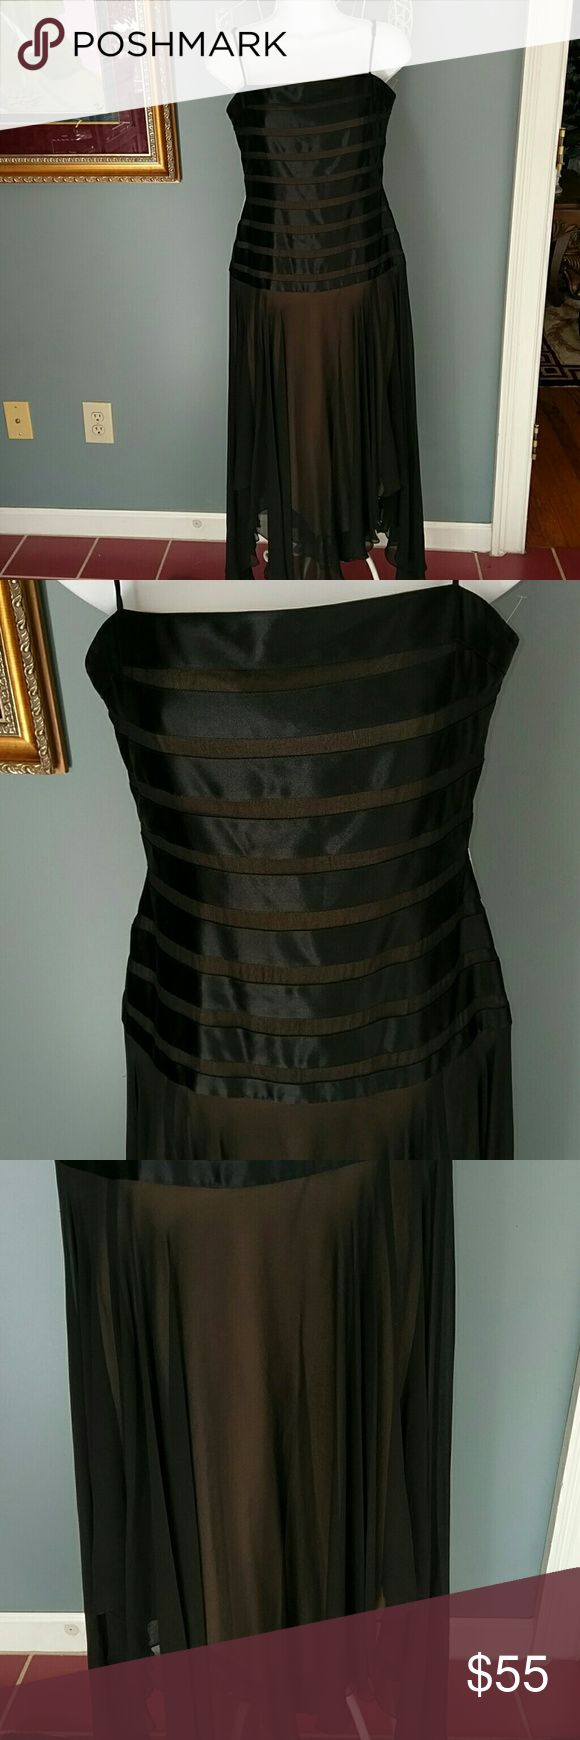 BCBG MAXAZRIA black chefon and satin dress Beautiful Black with spaghetti straps. Zippered in the back. Chefon black with beige lining..tapered bottom. Great for any special occasion or formal. BCBGMaxAzria Dresses Asymmetrical